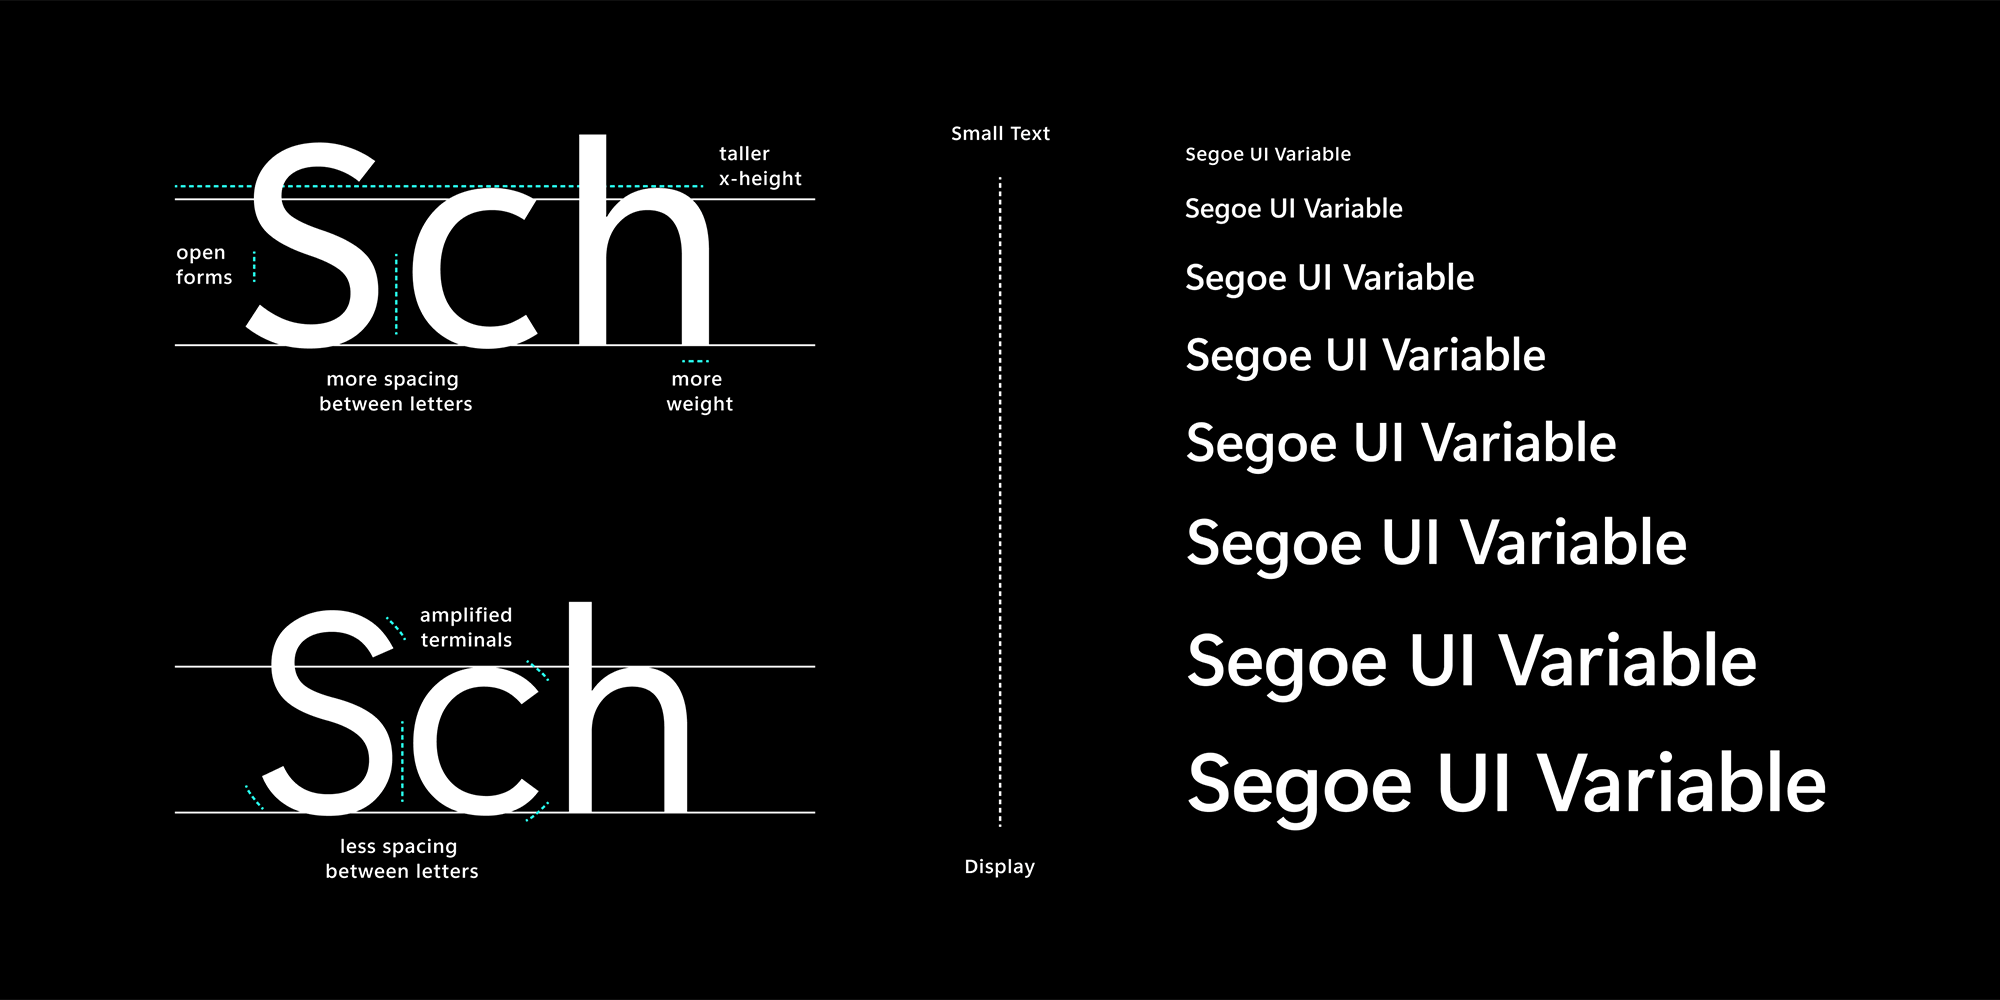 Demoing Segoe UI Variable at different sizes and pointing out the spacing differences.